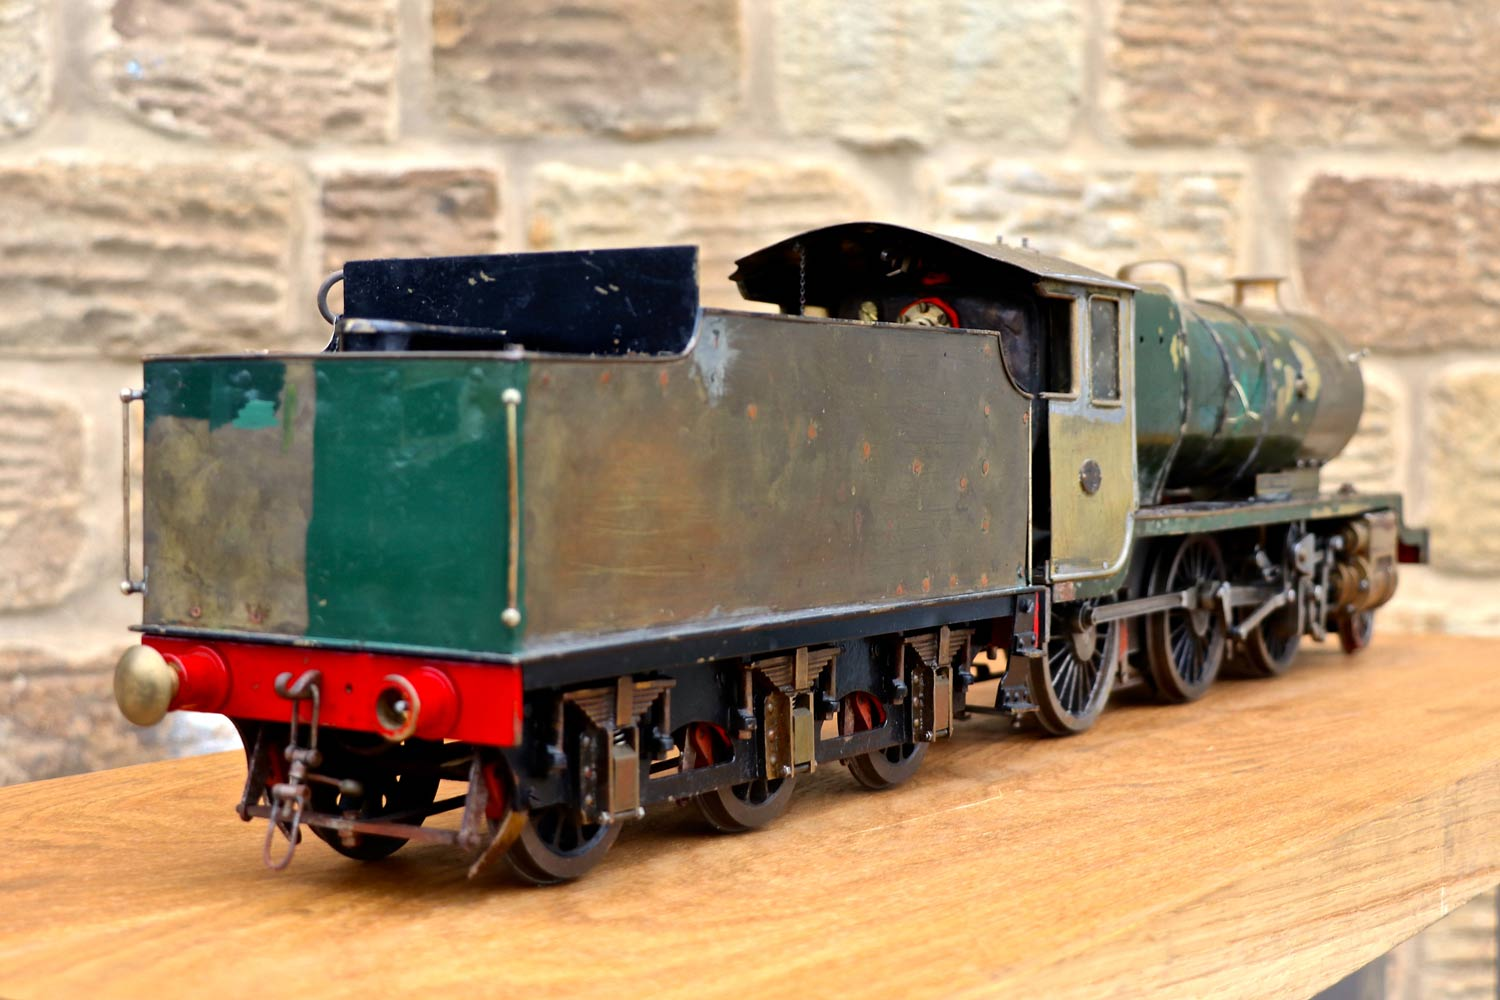 test 2-and-a-half-inch-gauge-LBSC-Lady-Dorothy-DYAK-live-steam-locomotive-for-sale-07